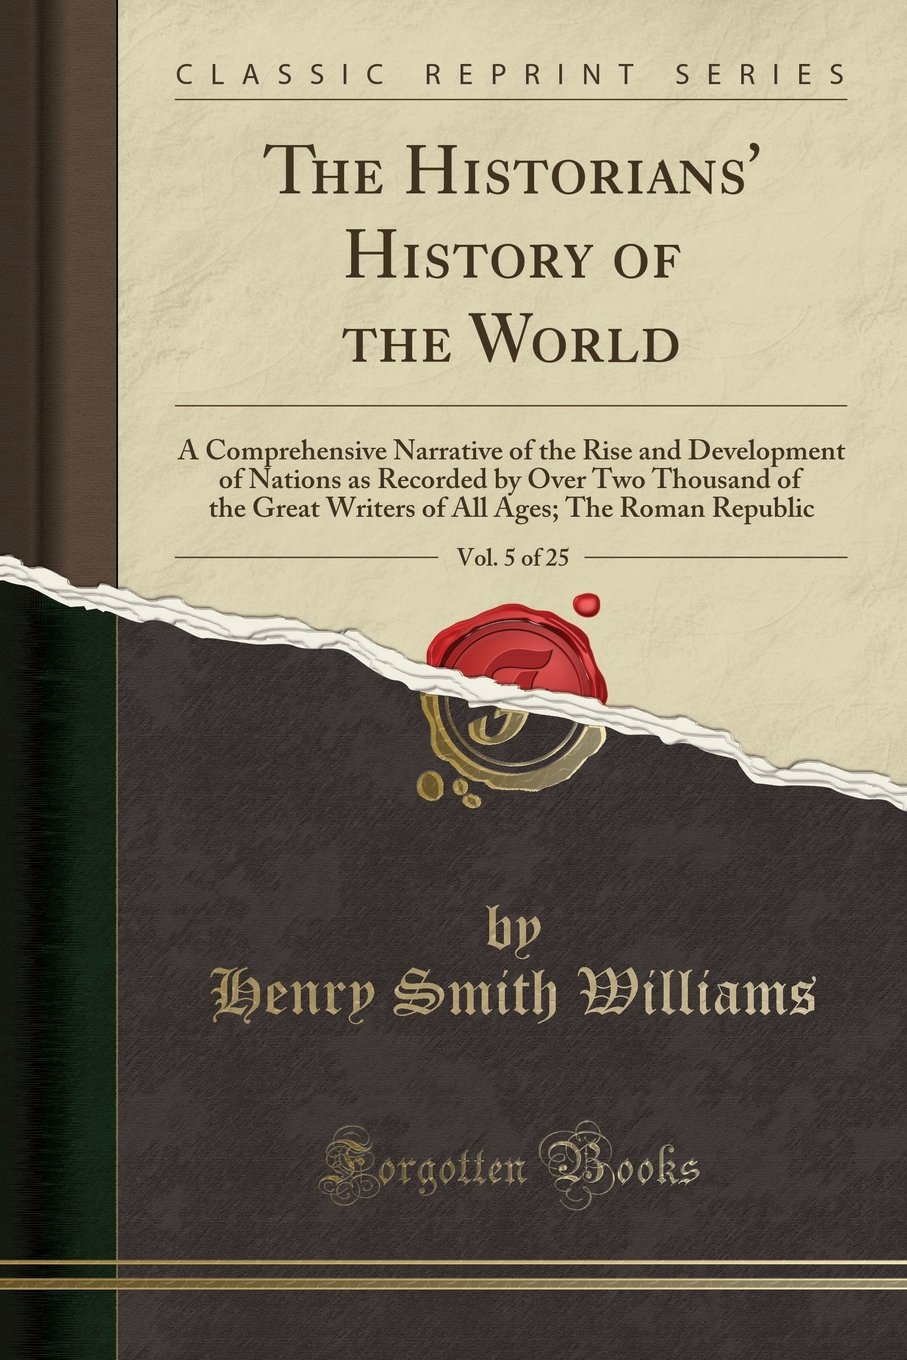 The Historians' History of the World, Vol. 5 of 25: A Comprehensive Narrative of the Rise and Development of Nations as Recorded by Over Two Thousand ... Ages; The Roman Republic (Classic Reprint) pdf